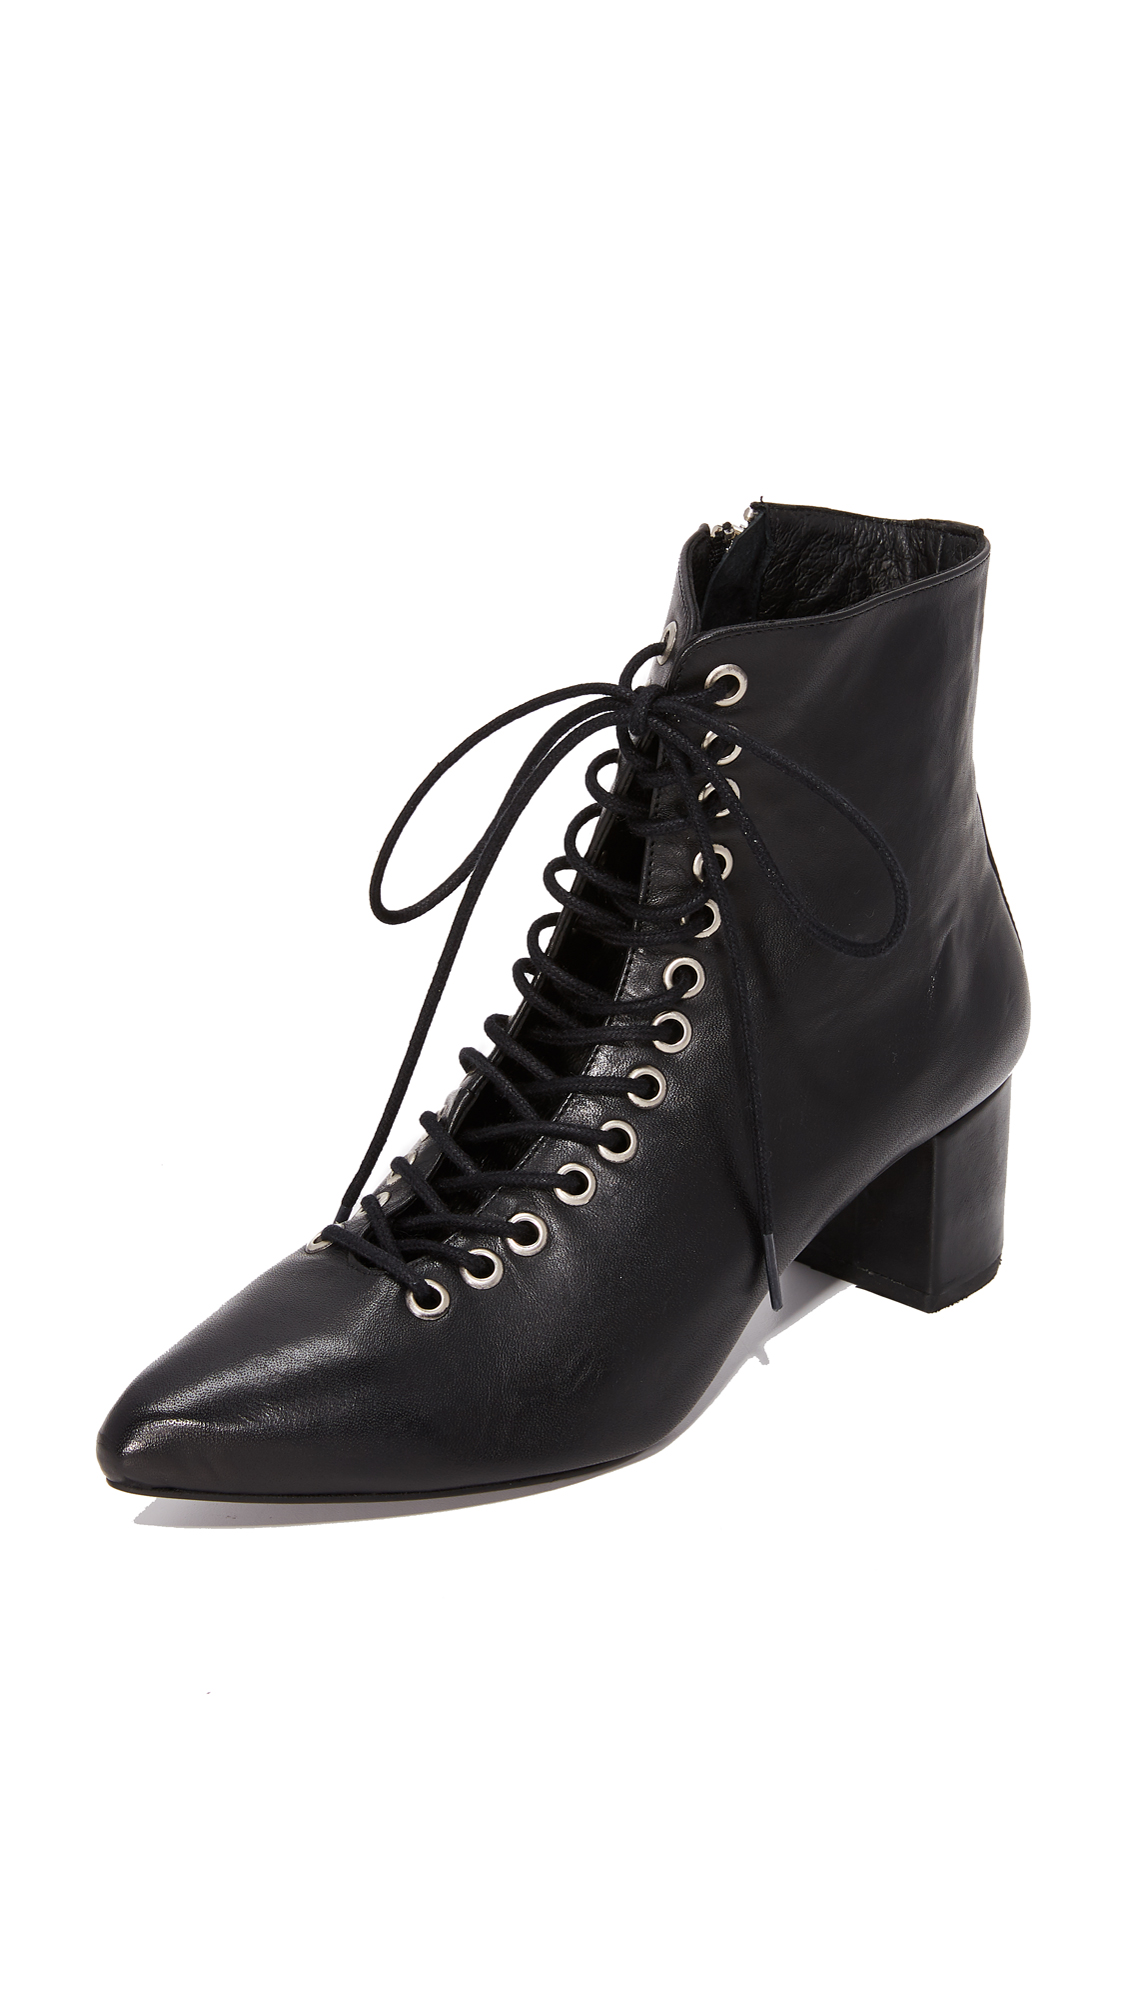 The Archive The Jane Lace Up Booties - Black